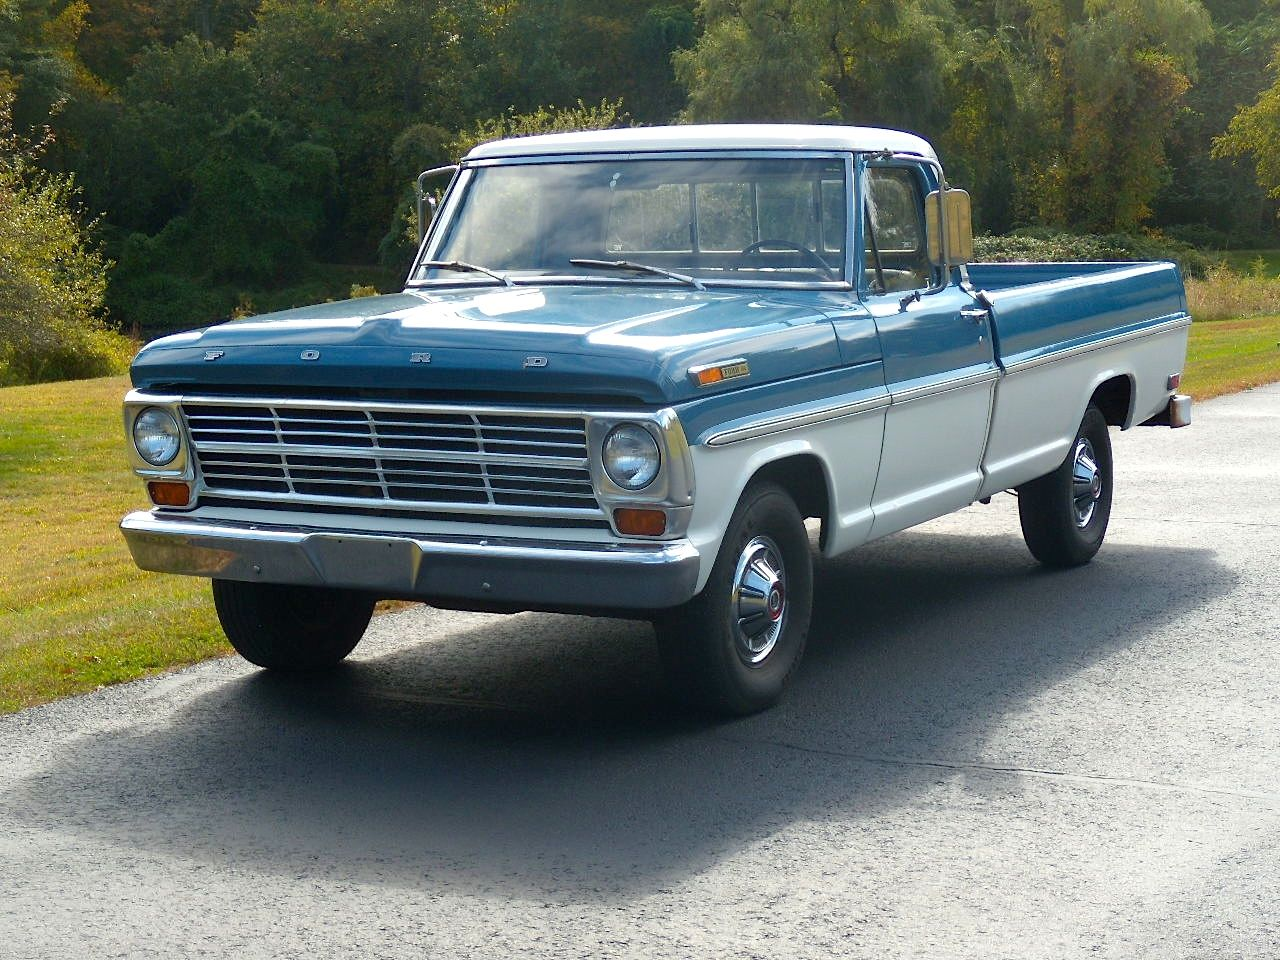 older pickup trucks - Google Search | Yess | Pinterest | Ford, Ford ...